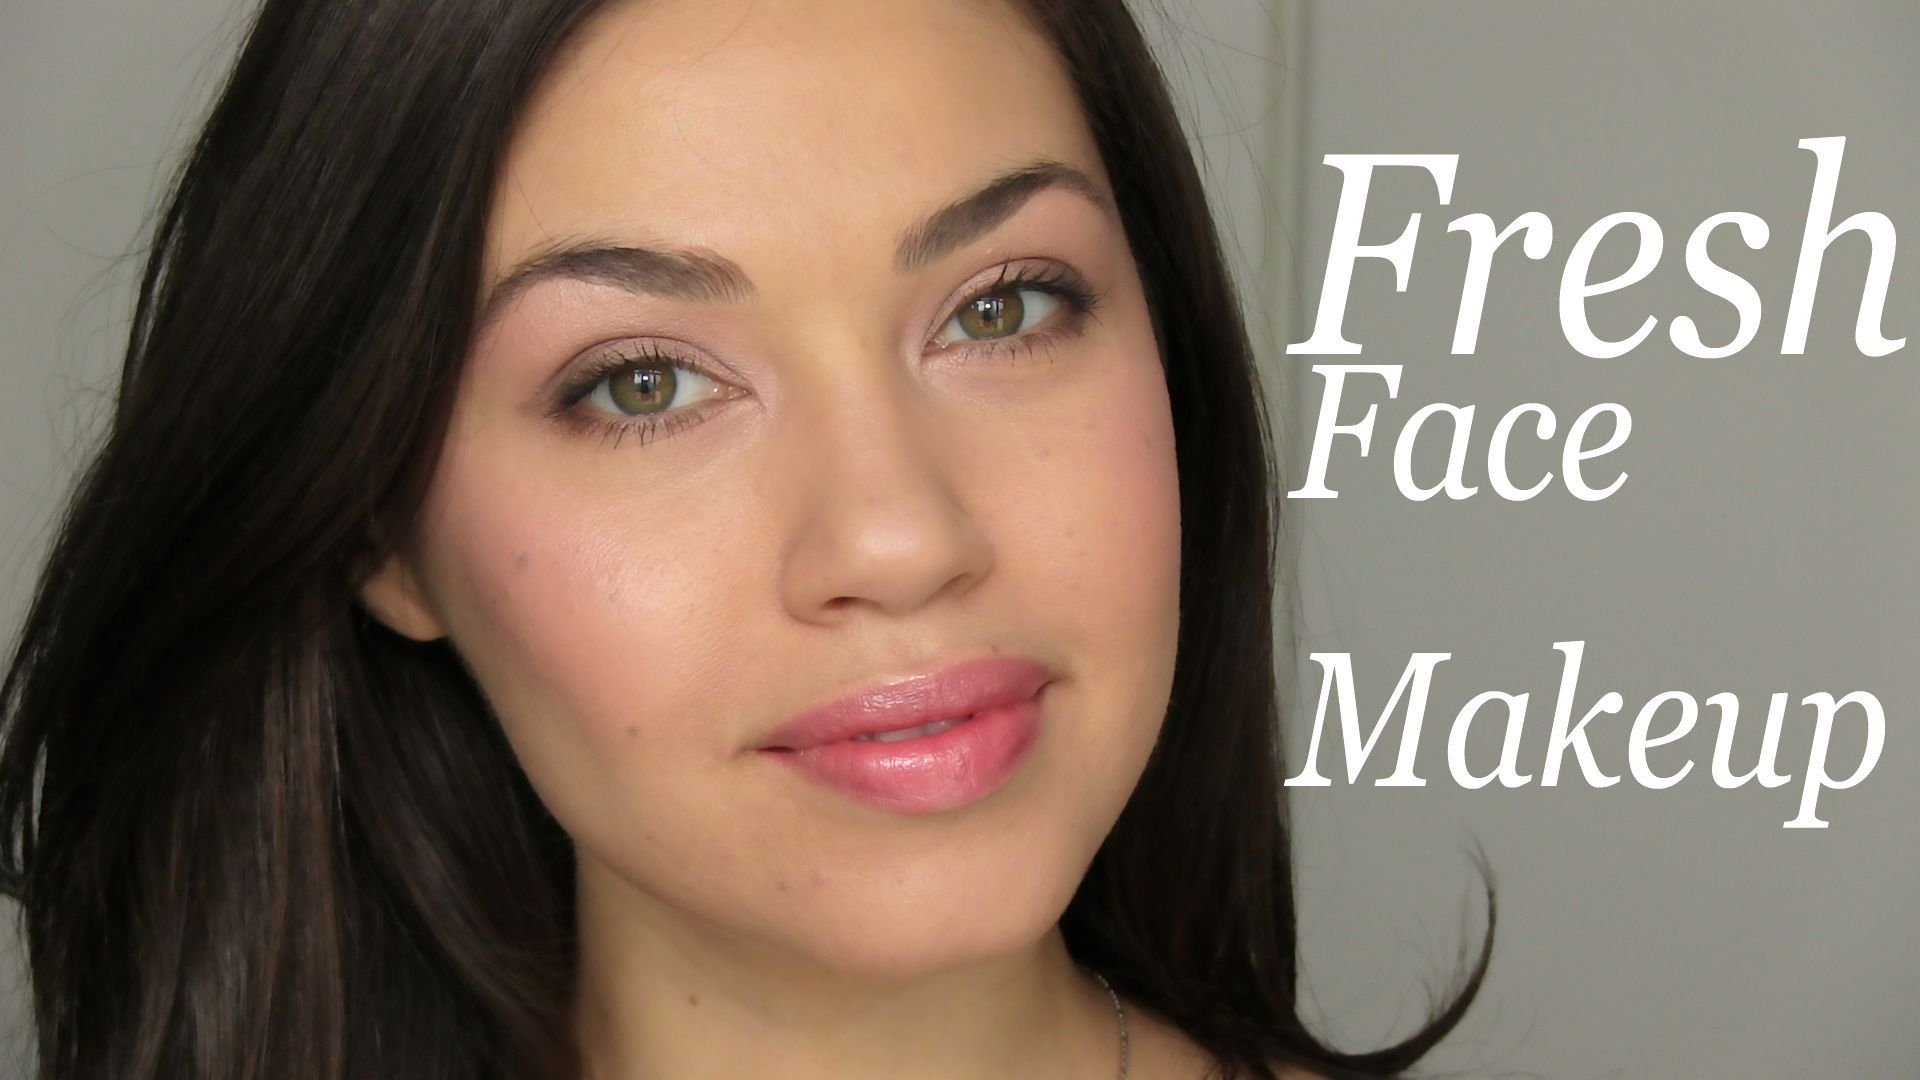 MakeupIdeasDramatic Face makeup, Simple everyday makeup